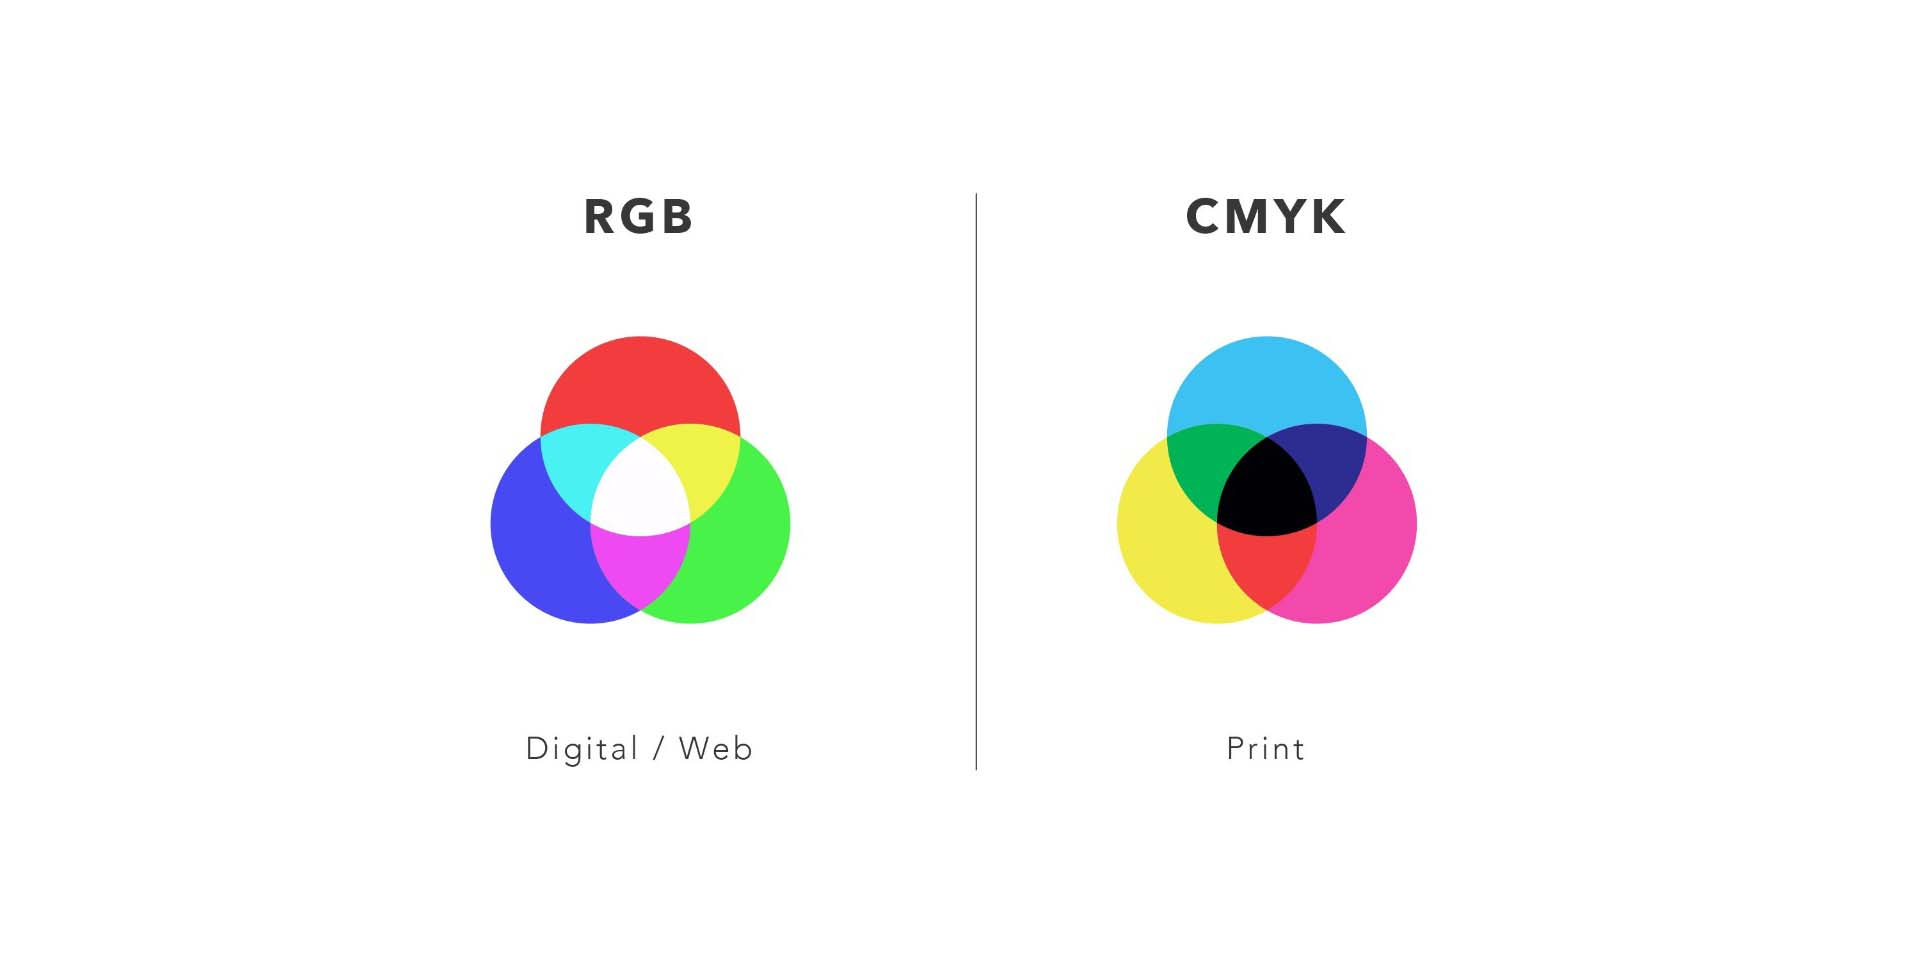 Circles of colours of RGB and CMYK colour spaces